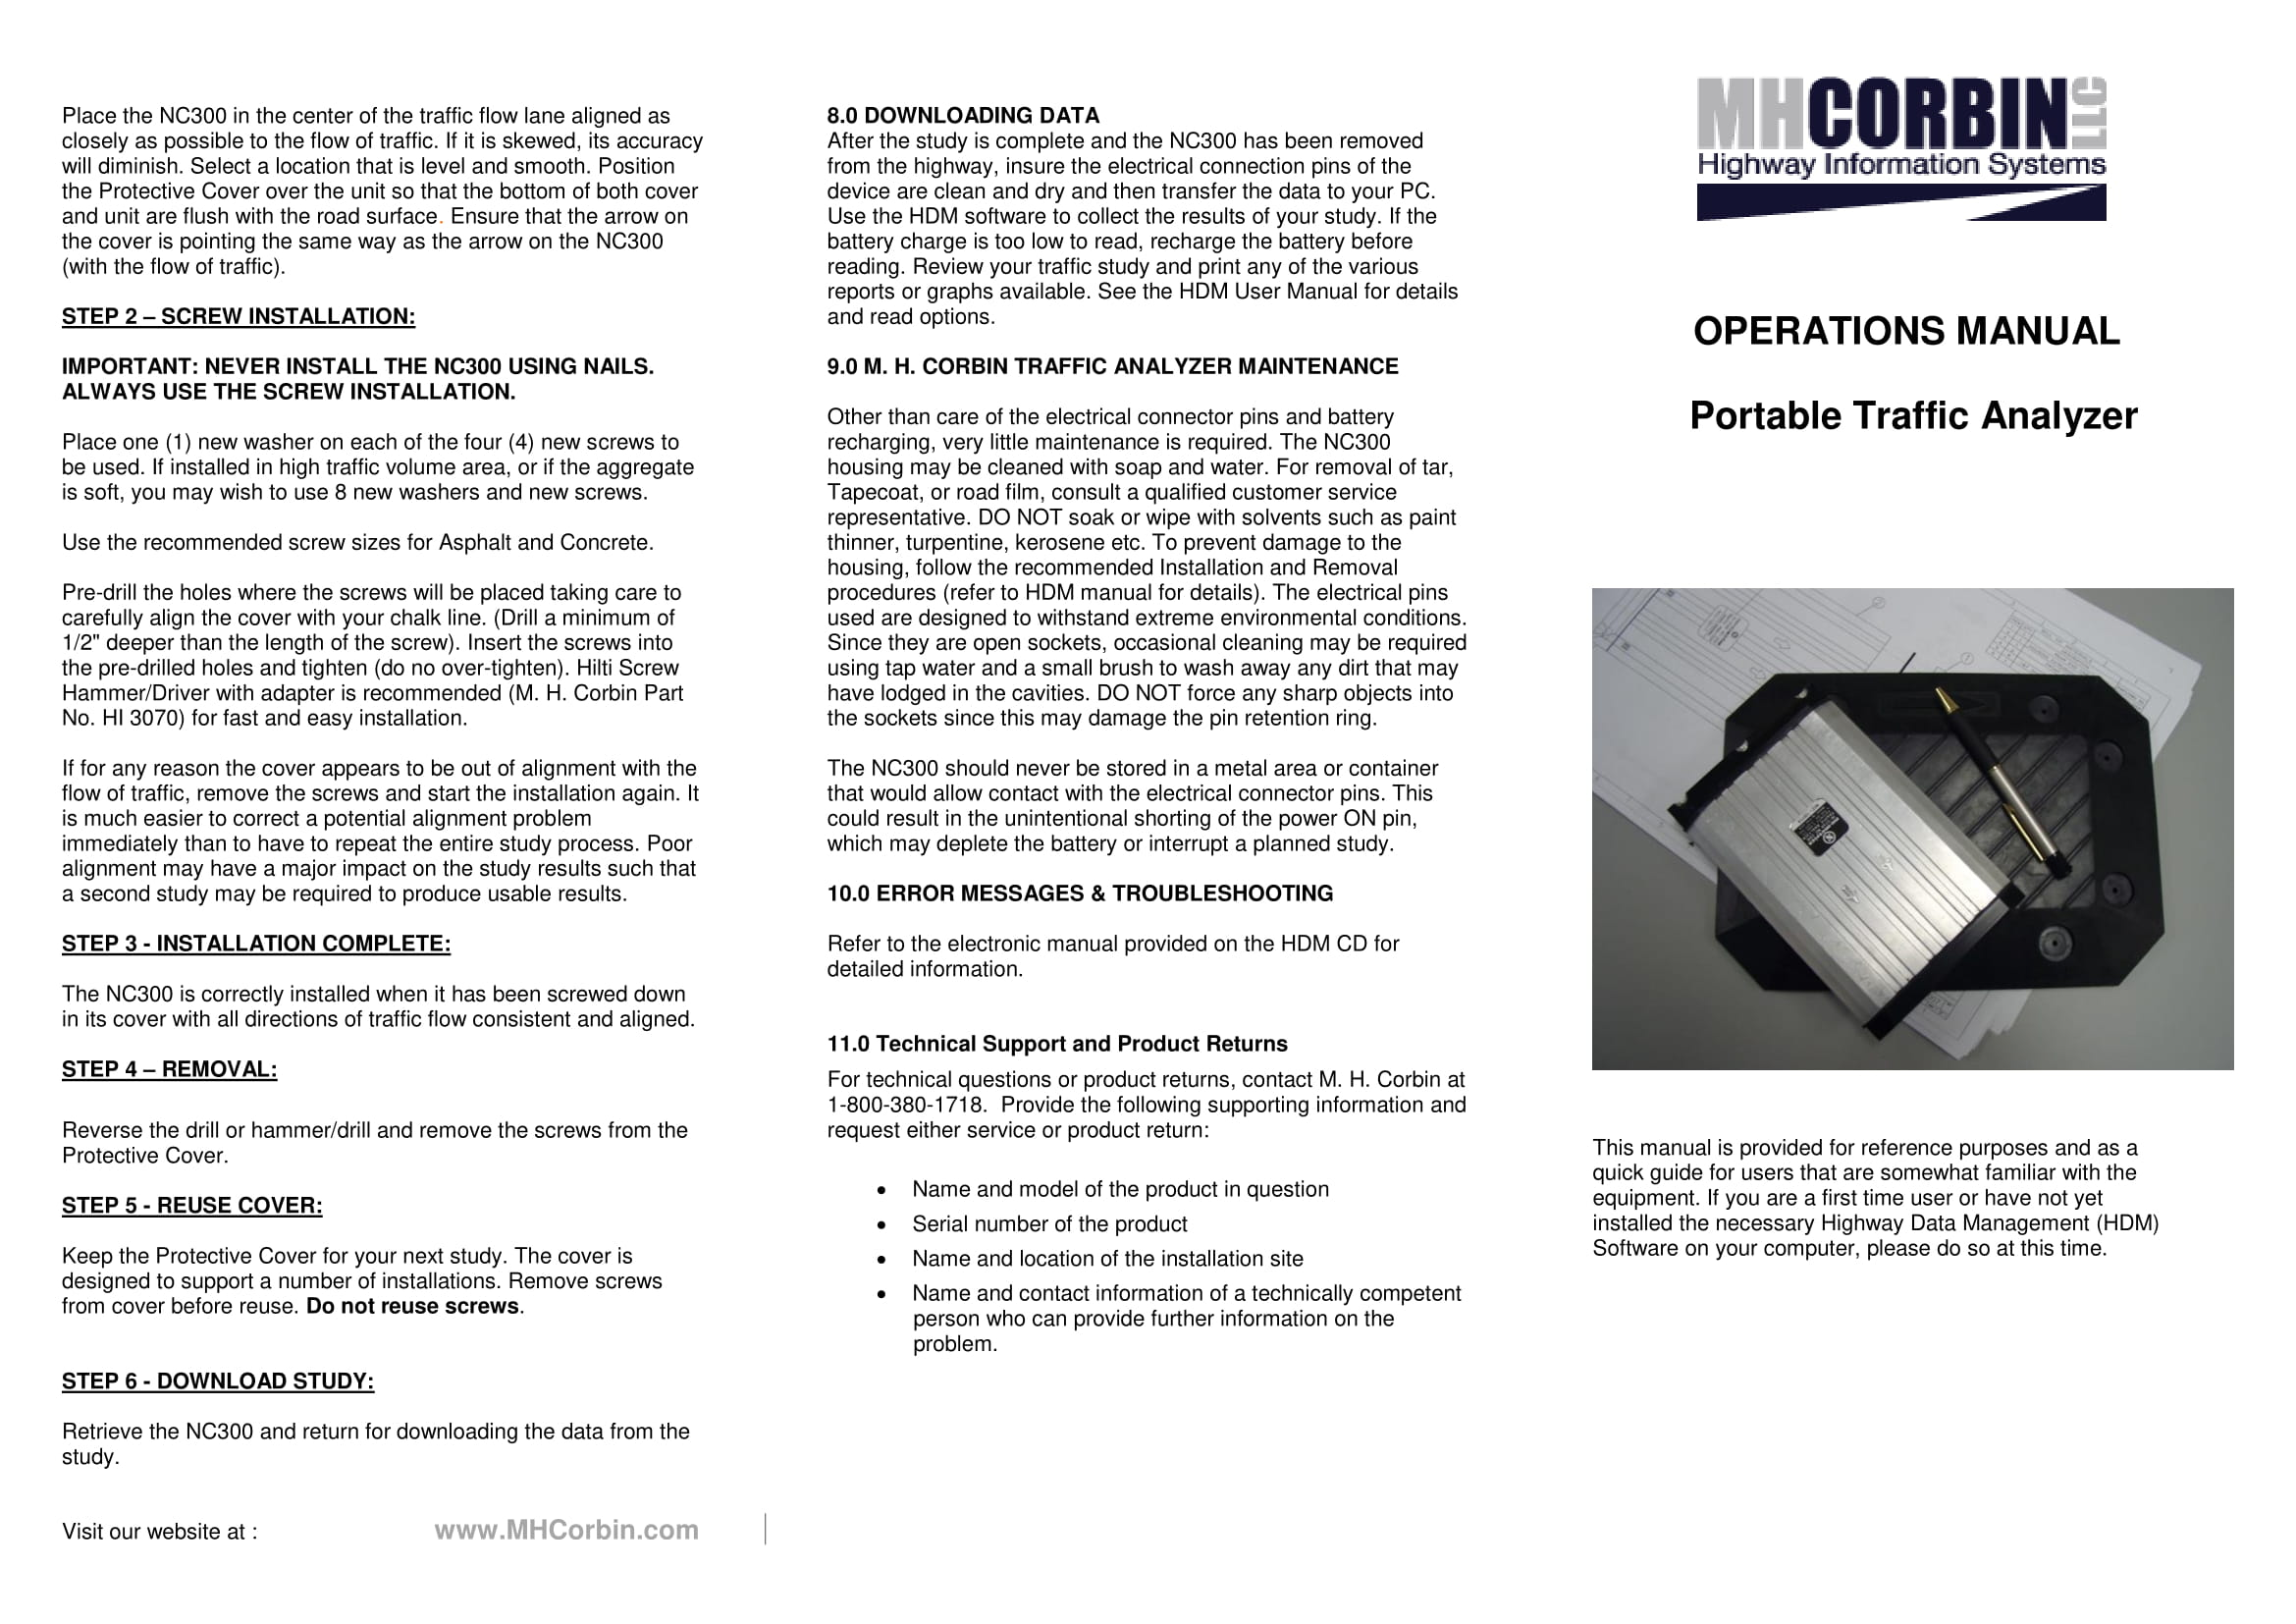 NC300 Operations Manual-2.jpg